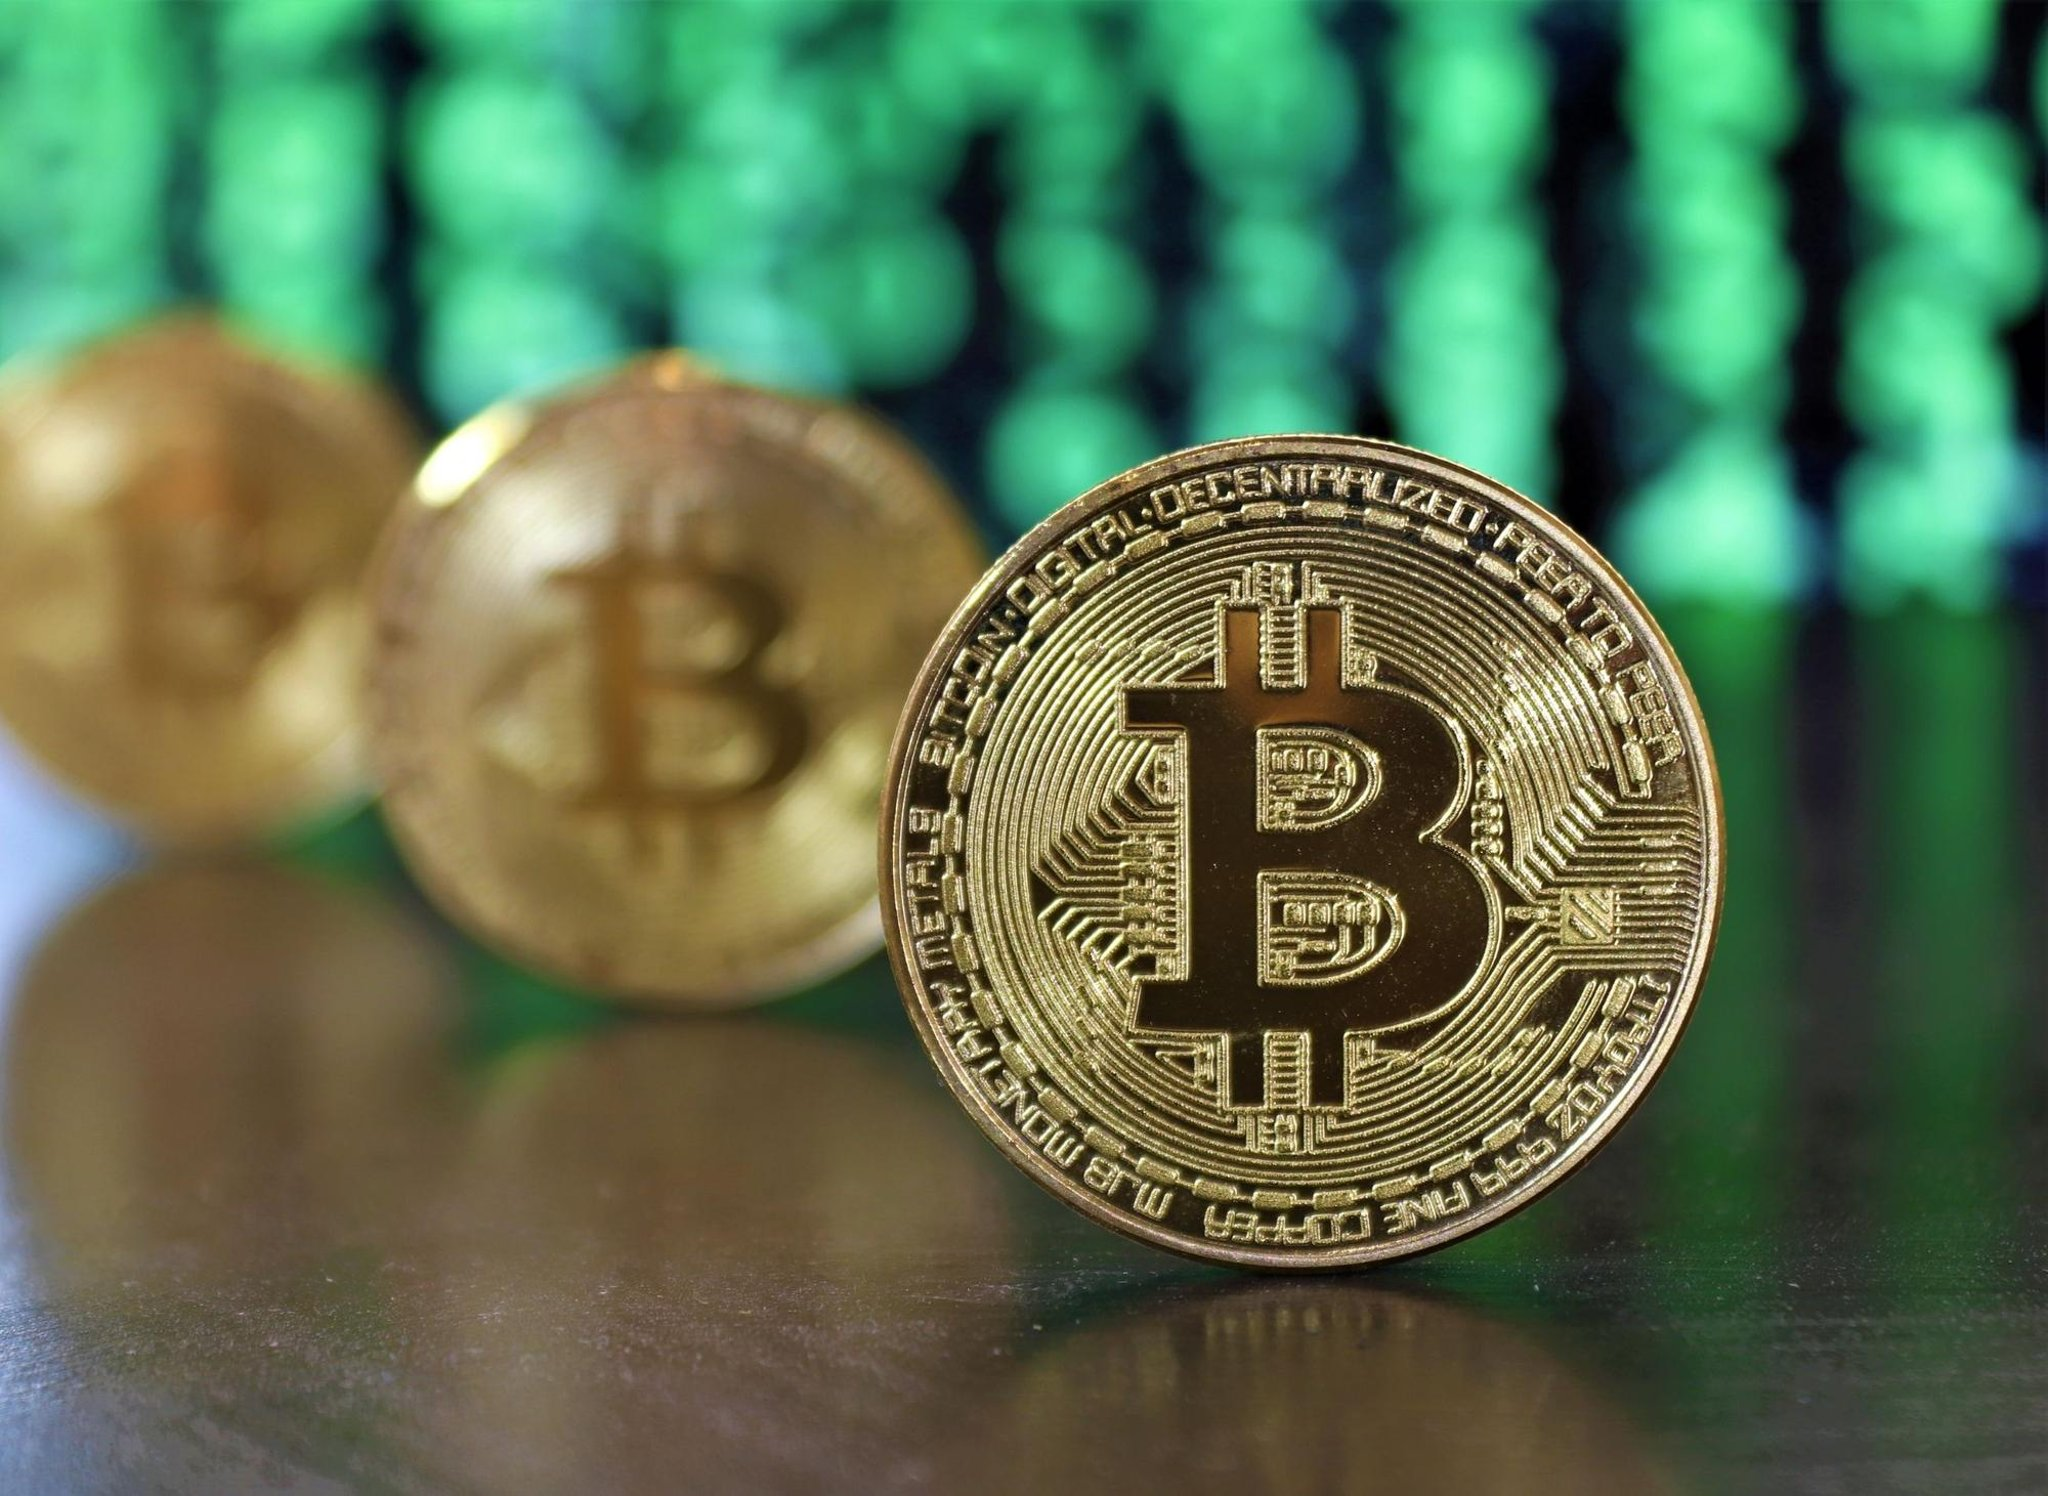 Bitcoin Price Has Bitcoin Recovered From Latest Crypto Crash Latest Cryptocurrency News And Prices Of Bitcoin Ethereum And More The Scotsman